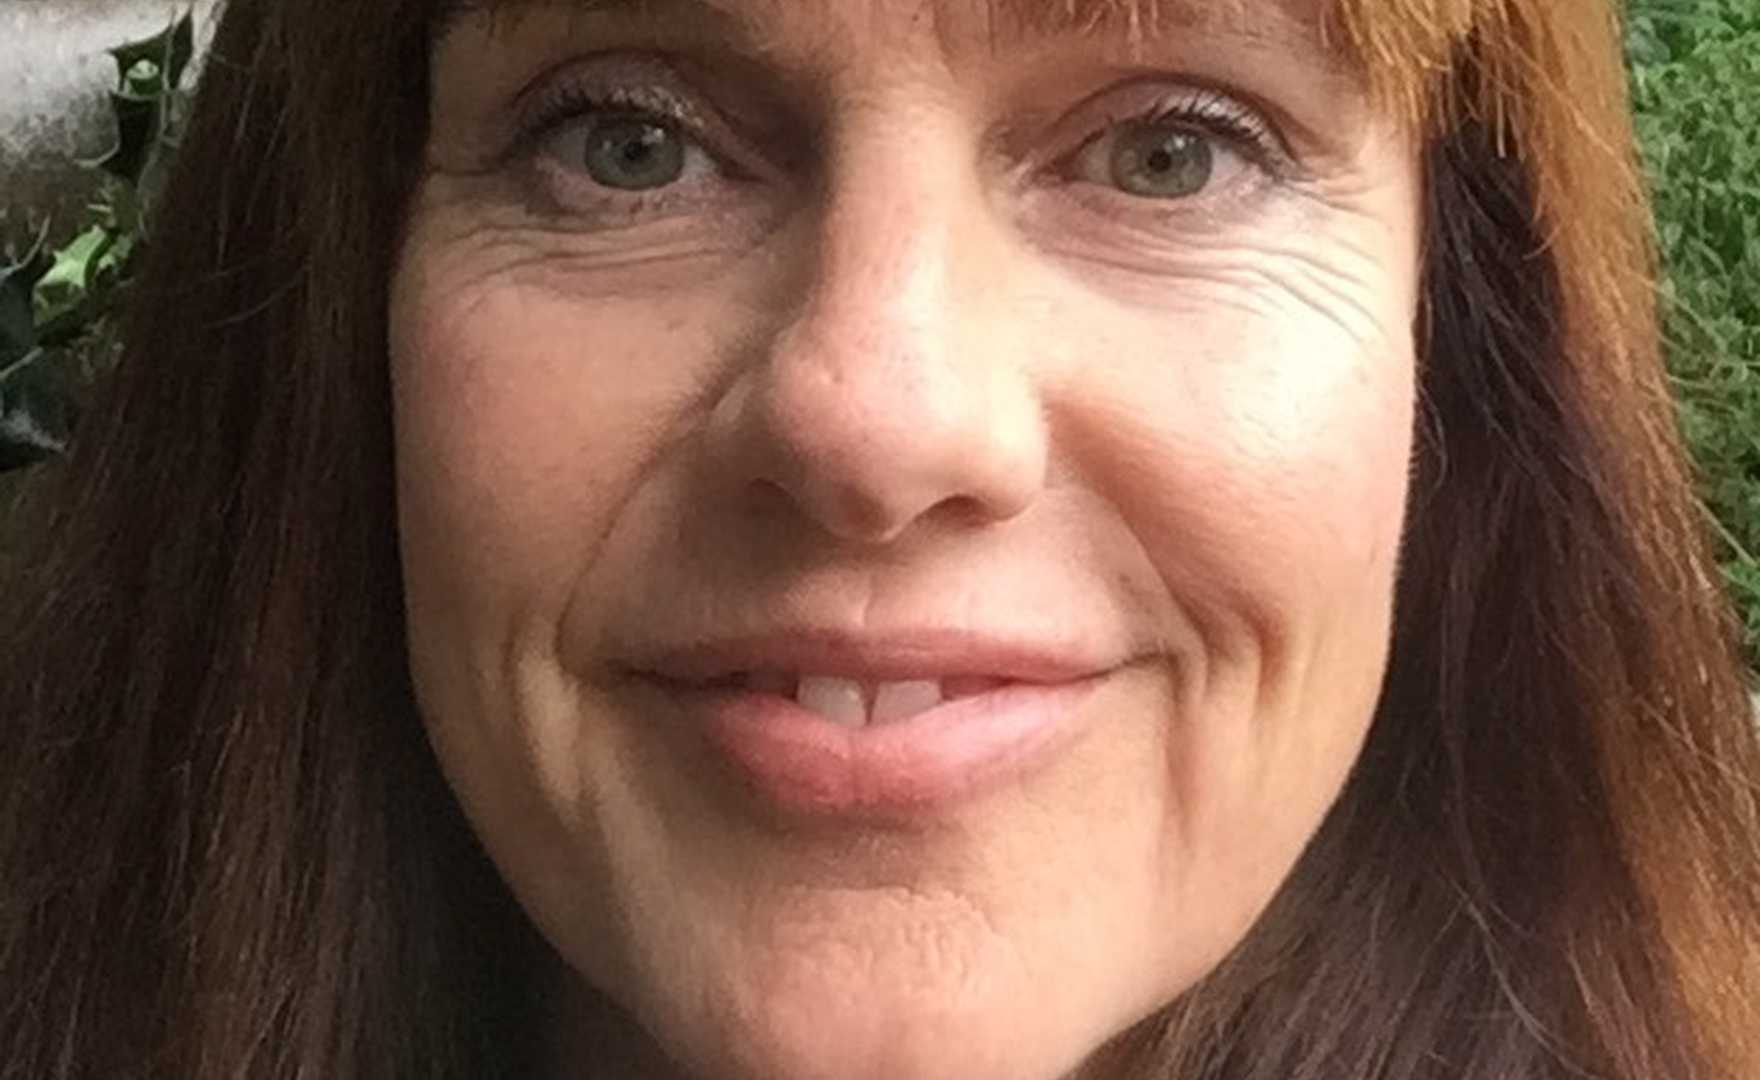 In conversation with Liz Hall, Coaching at Work